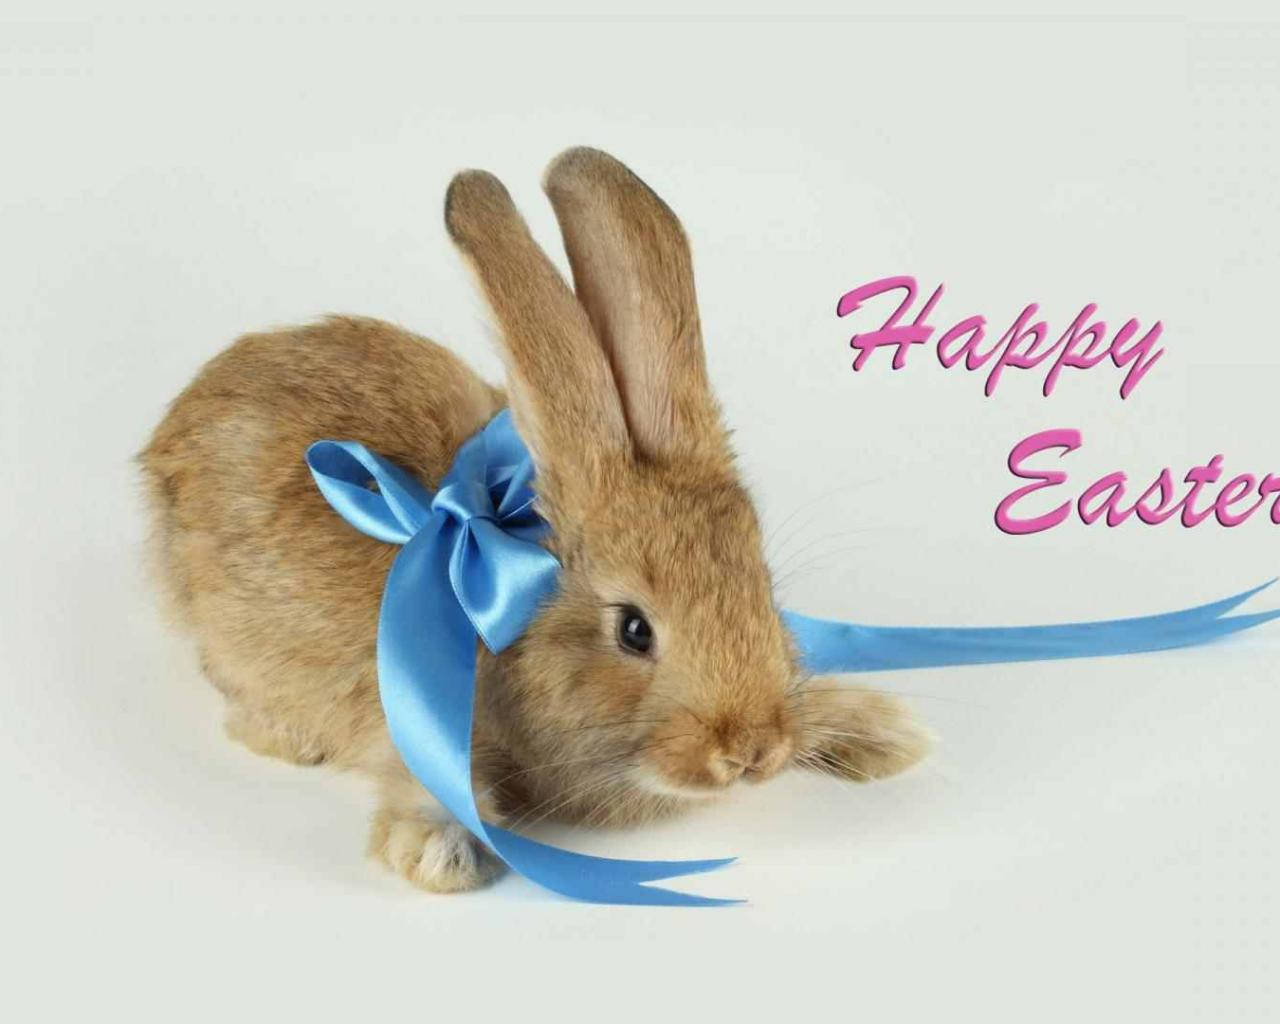 hd wallpaper happy easter bunny   Background Wallpapers 1280x1024